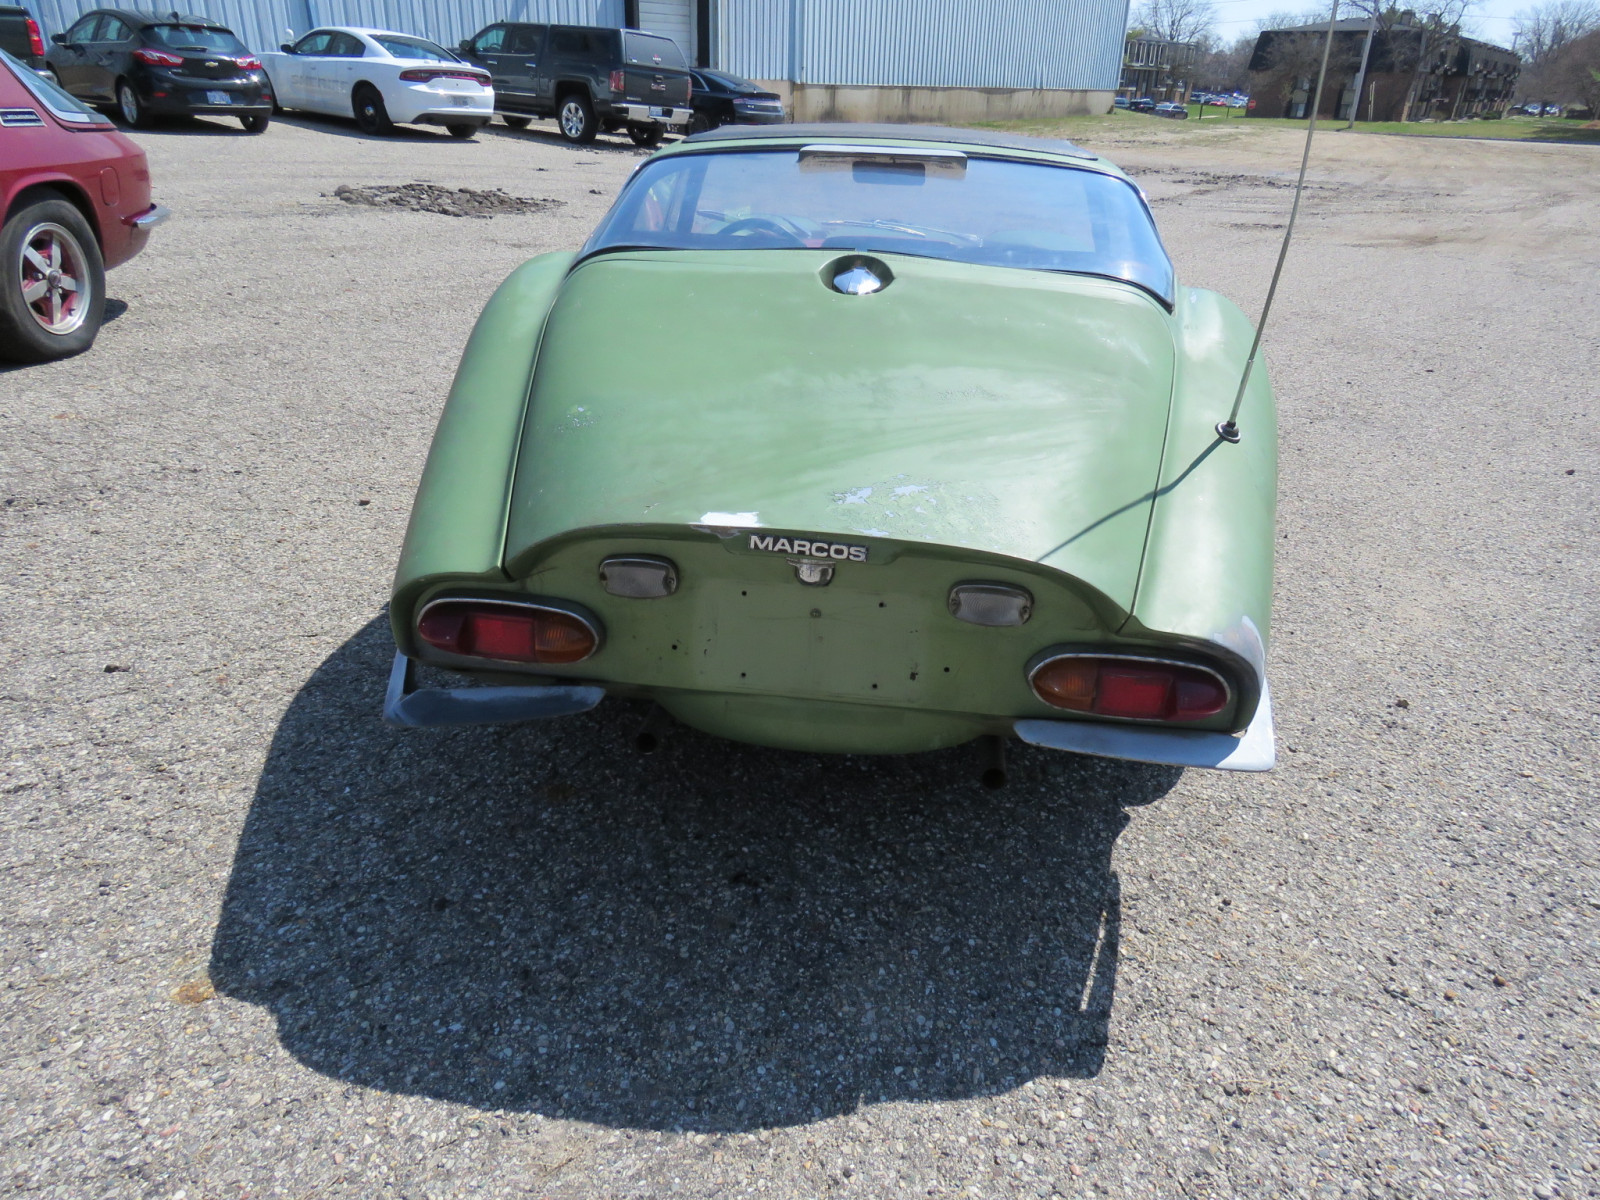 1969 Marcos Model 1600 Coupe - Image 6